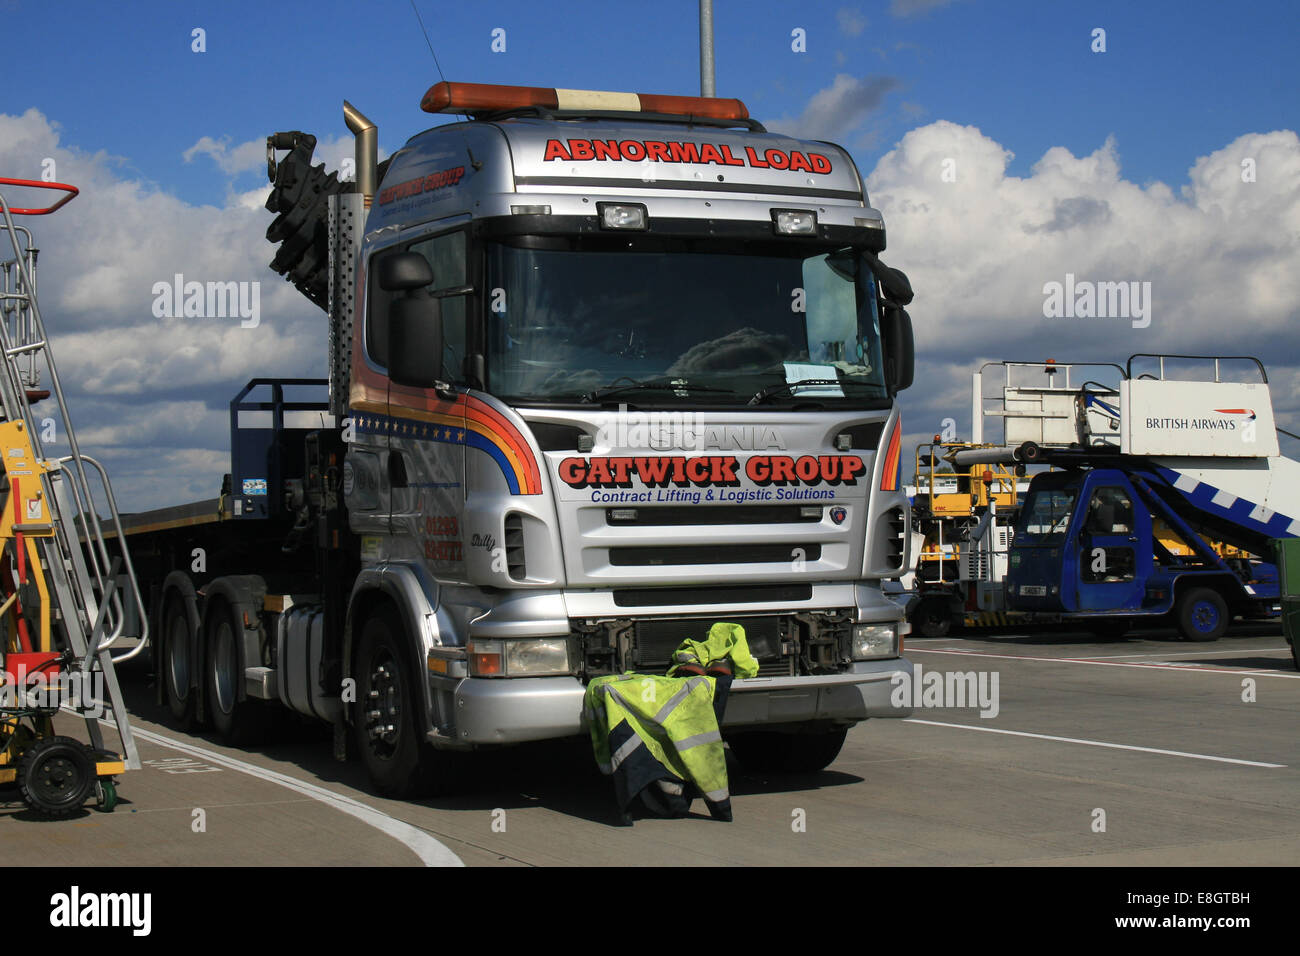 gatwick group haulage abnormal load - Stock Image